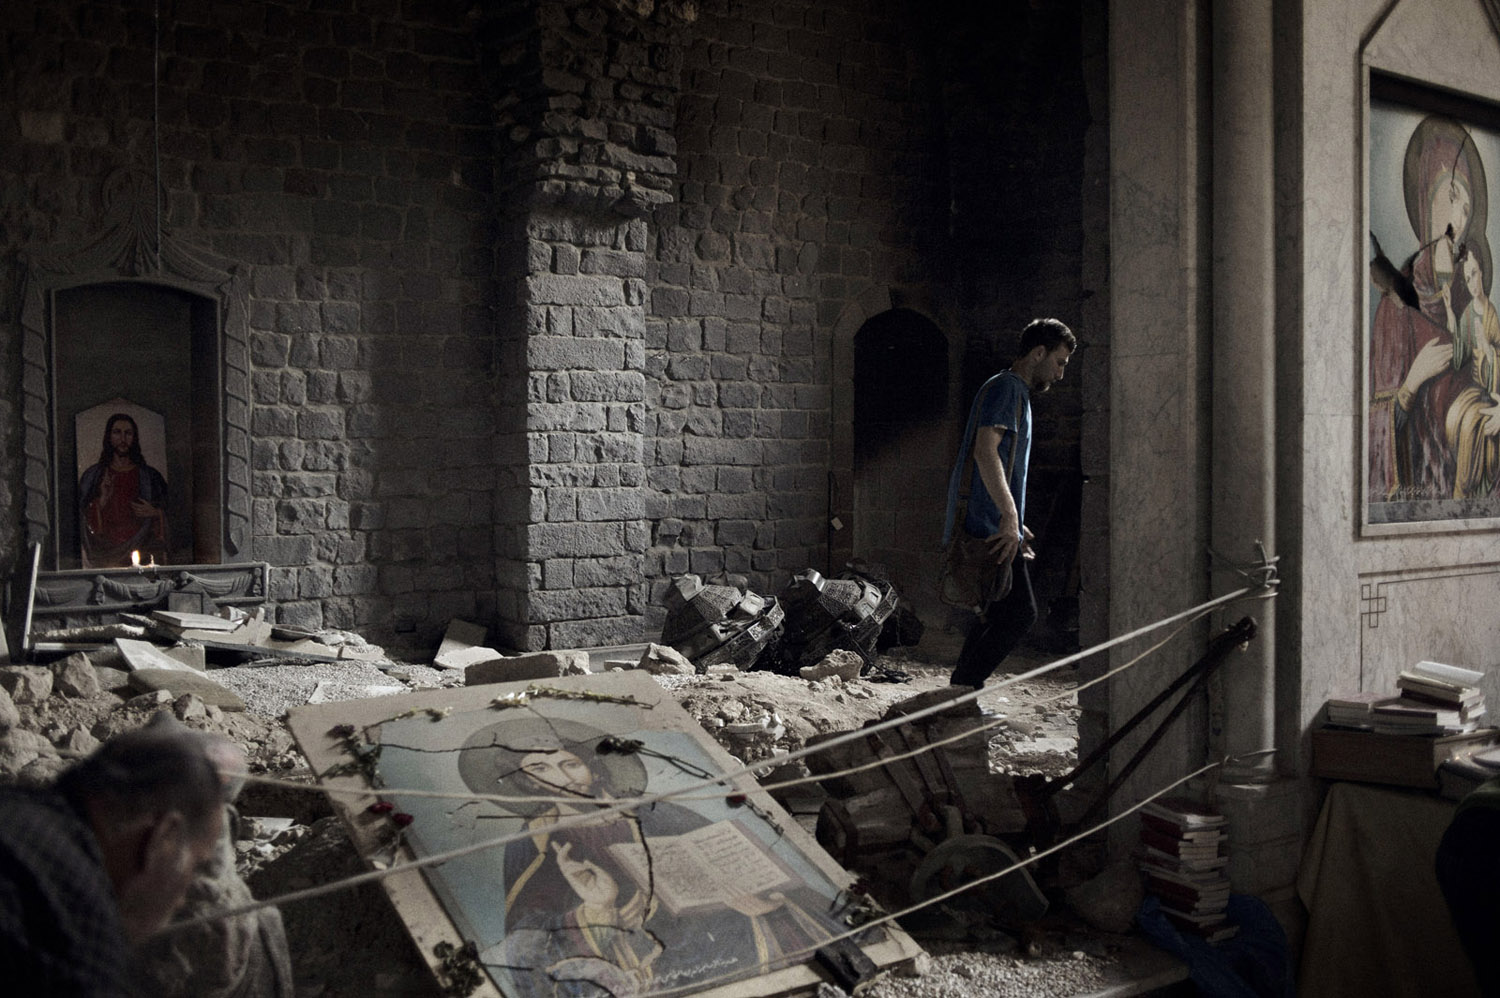 Parishioners return to the Saint Mary's  Church of the Holy Belt in Homs for the first time in two years, finding it mostly intact except for a hole in the roof from shelling. May 14, 2014.